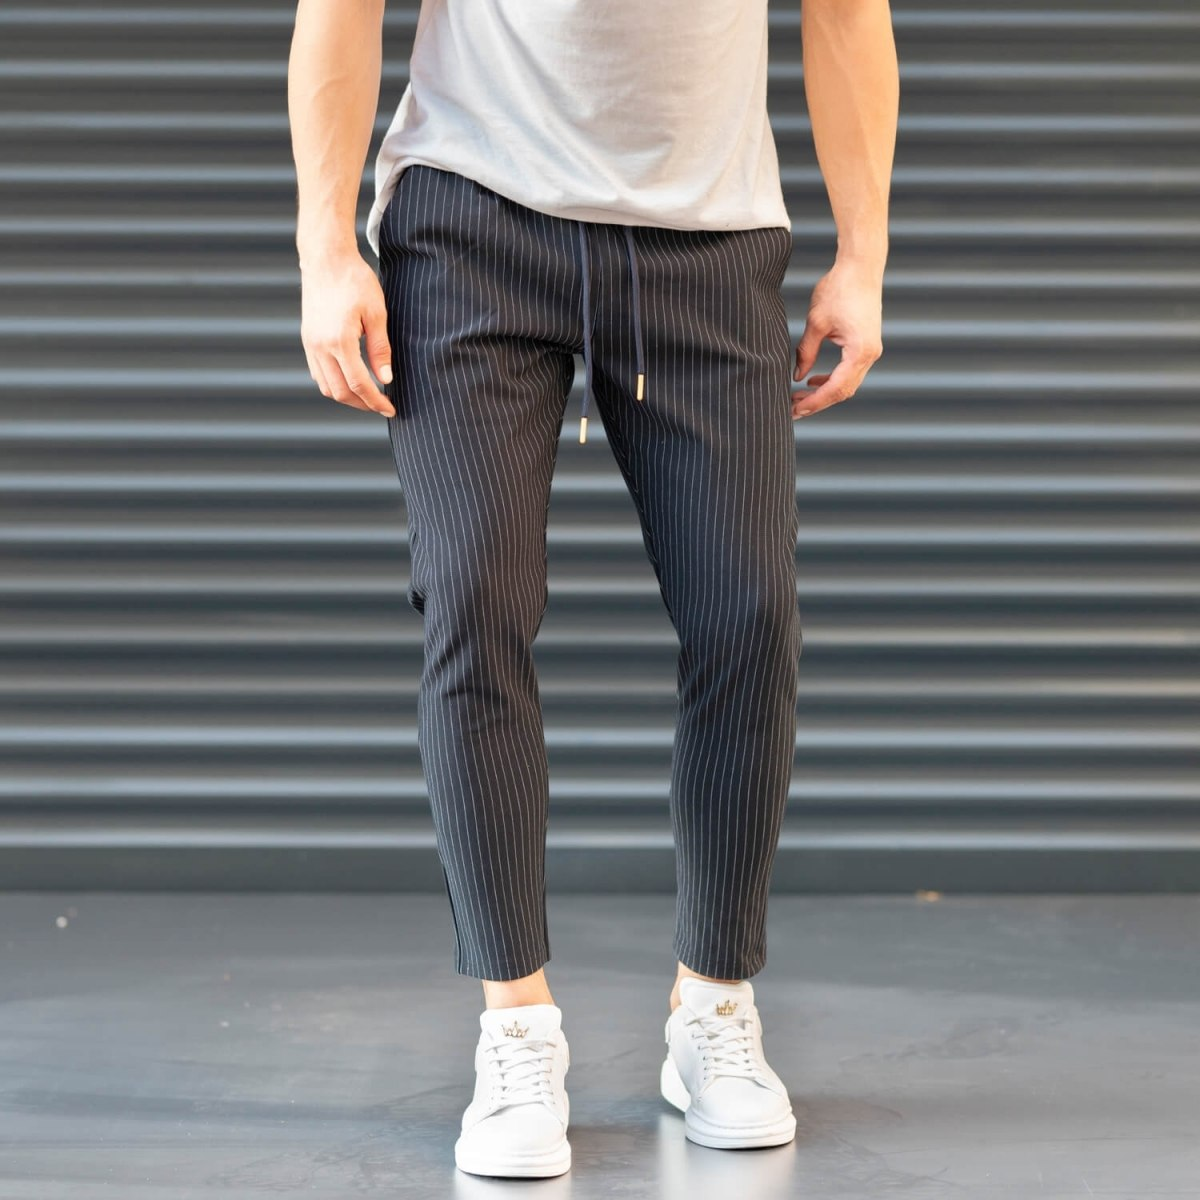 Men's Stripped Style...